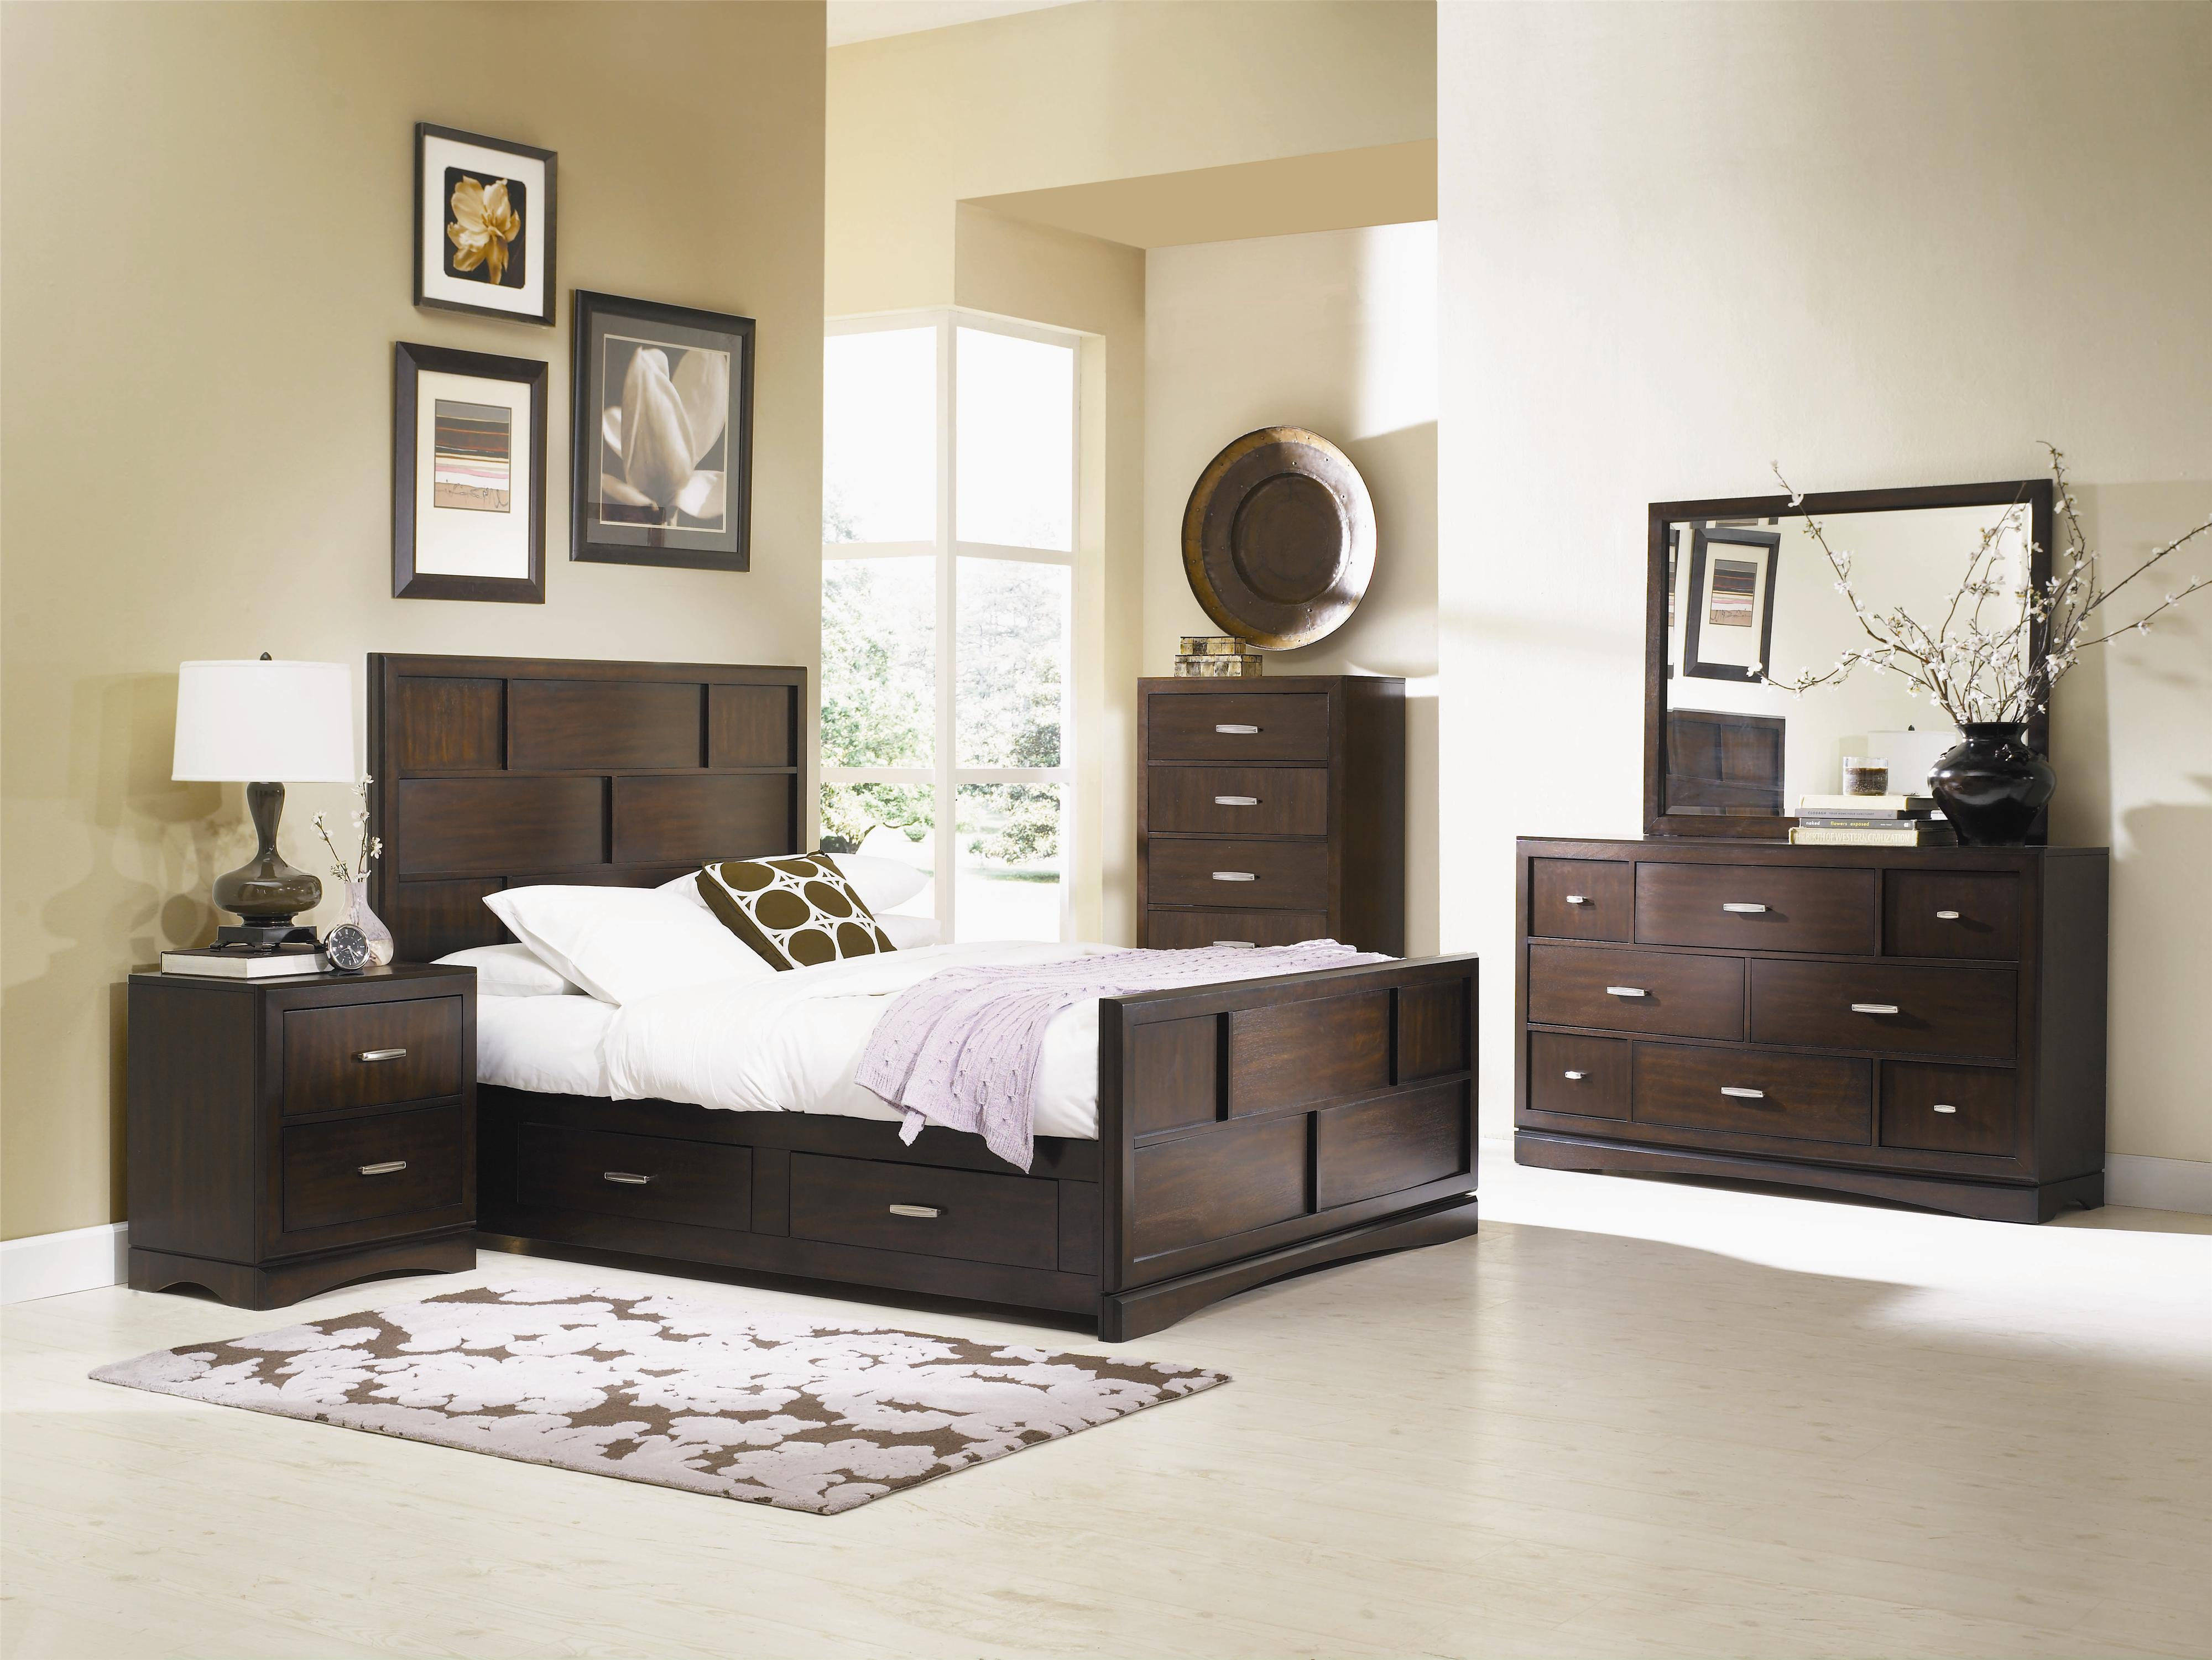 King Size Panel Bed With Grid Detail And Storage Drawers